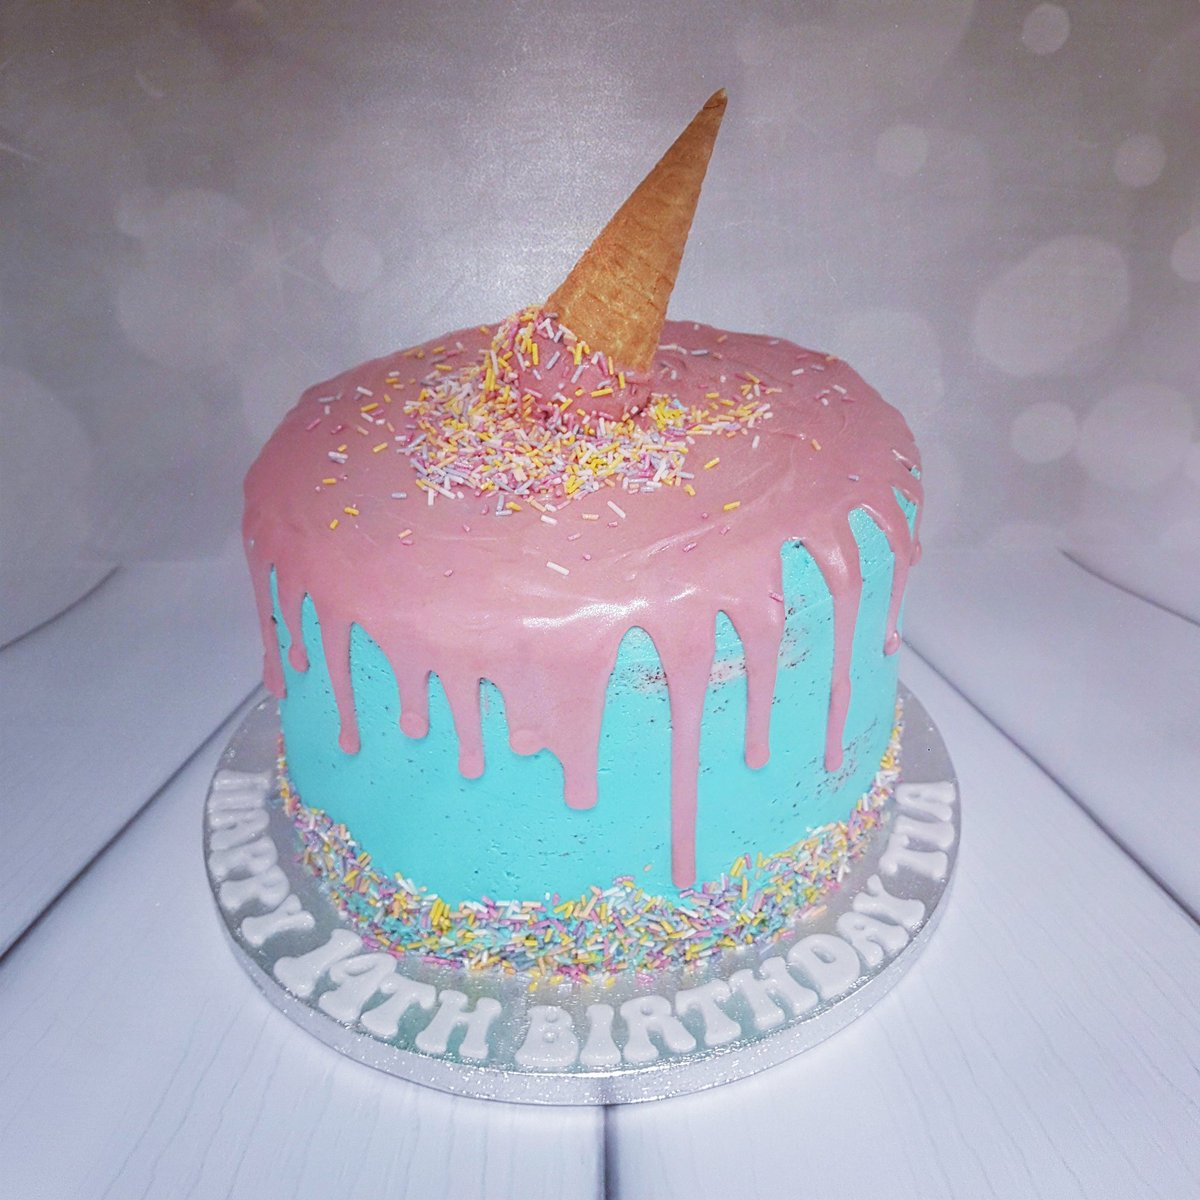 Magnificent Littlemissalicecakes On Twitter Ice Cream Drip Cake For Tias Personalised Birthday Cards Arneslily Jamesorg